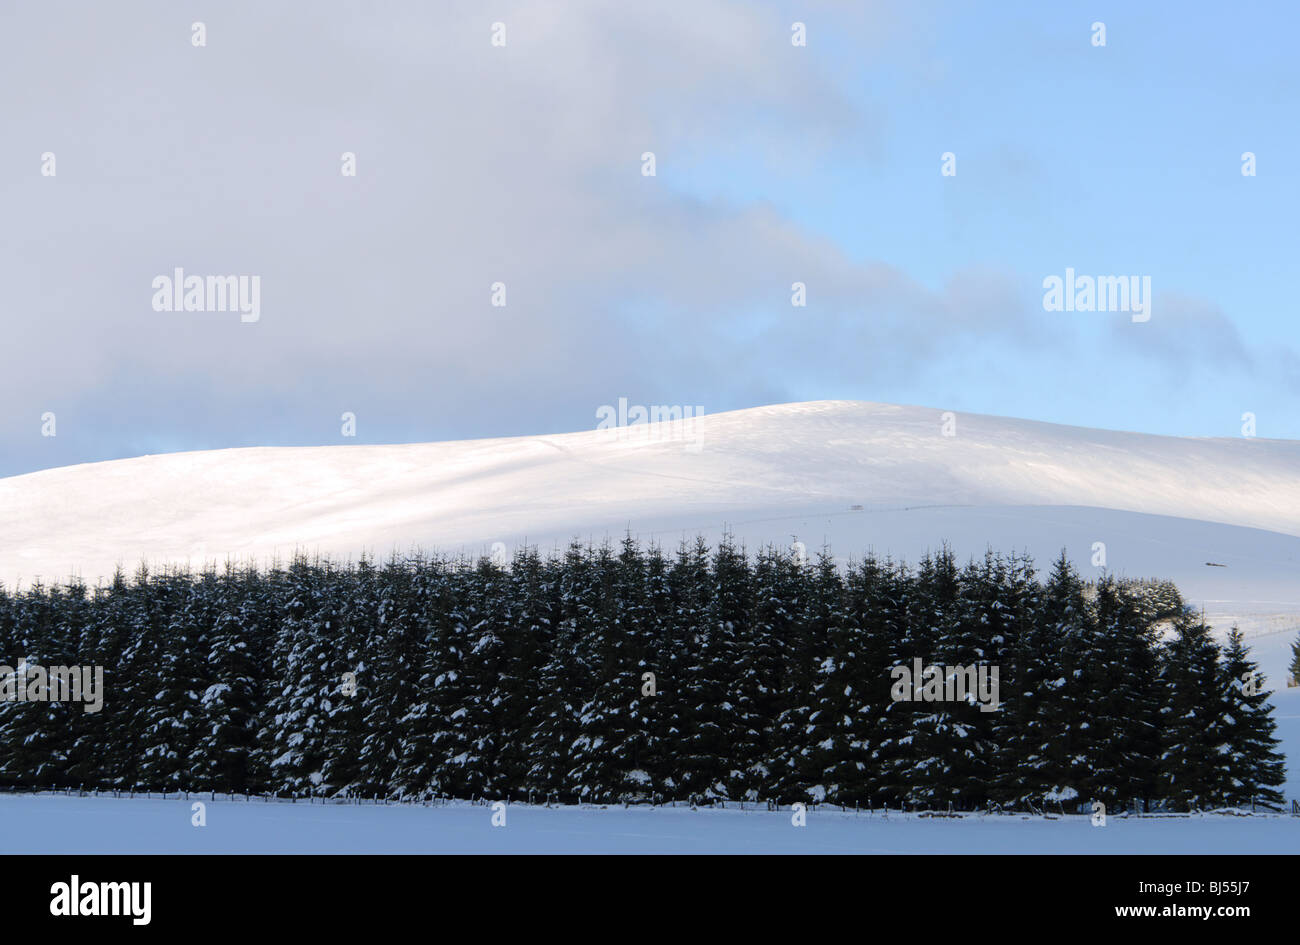 Snow covered conifers form the foreground to a winter view of the upper hills of Glenbuchat in Aberdeenshire - Stock Image